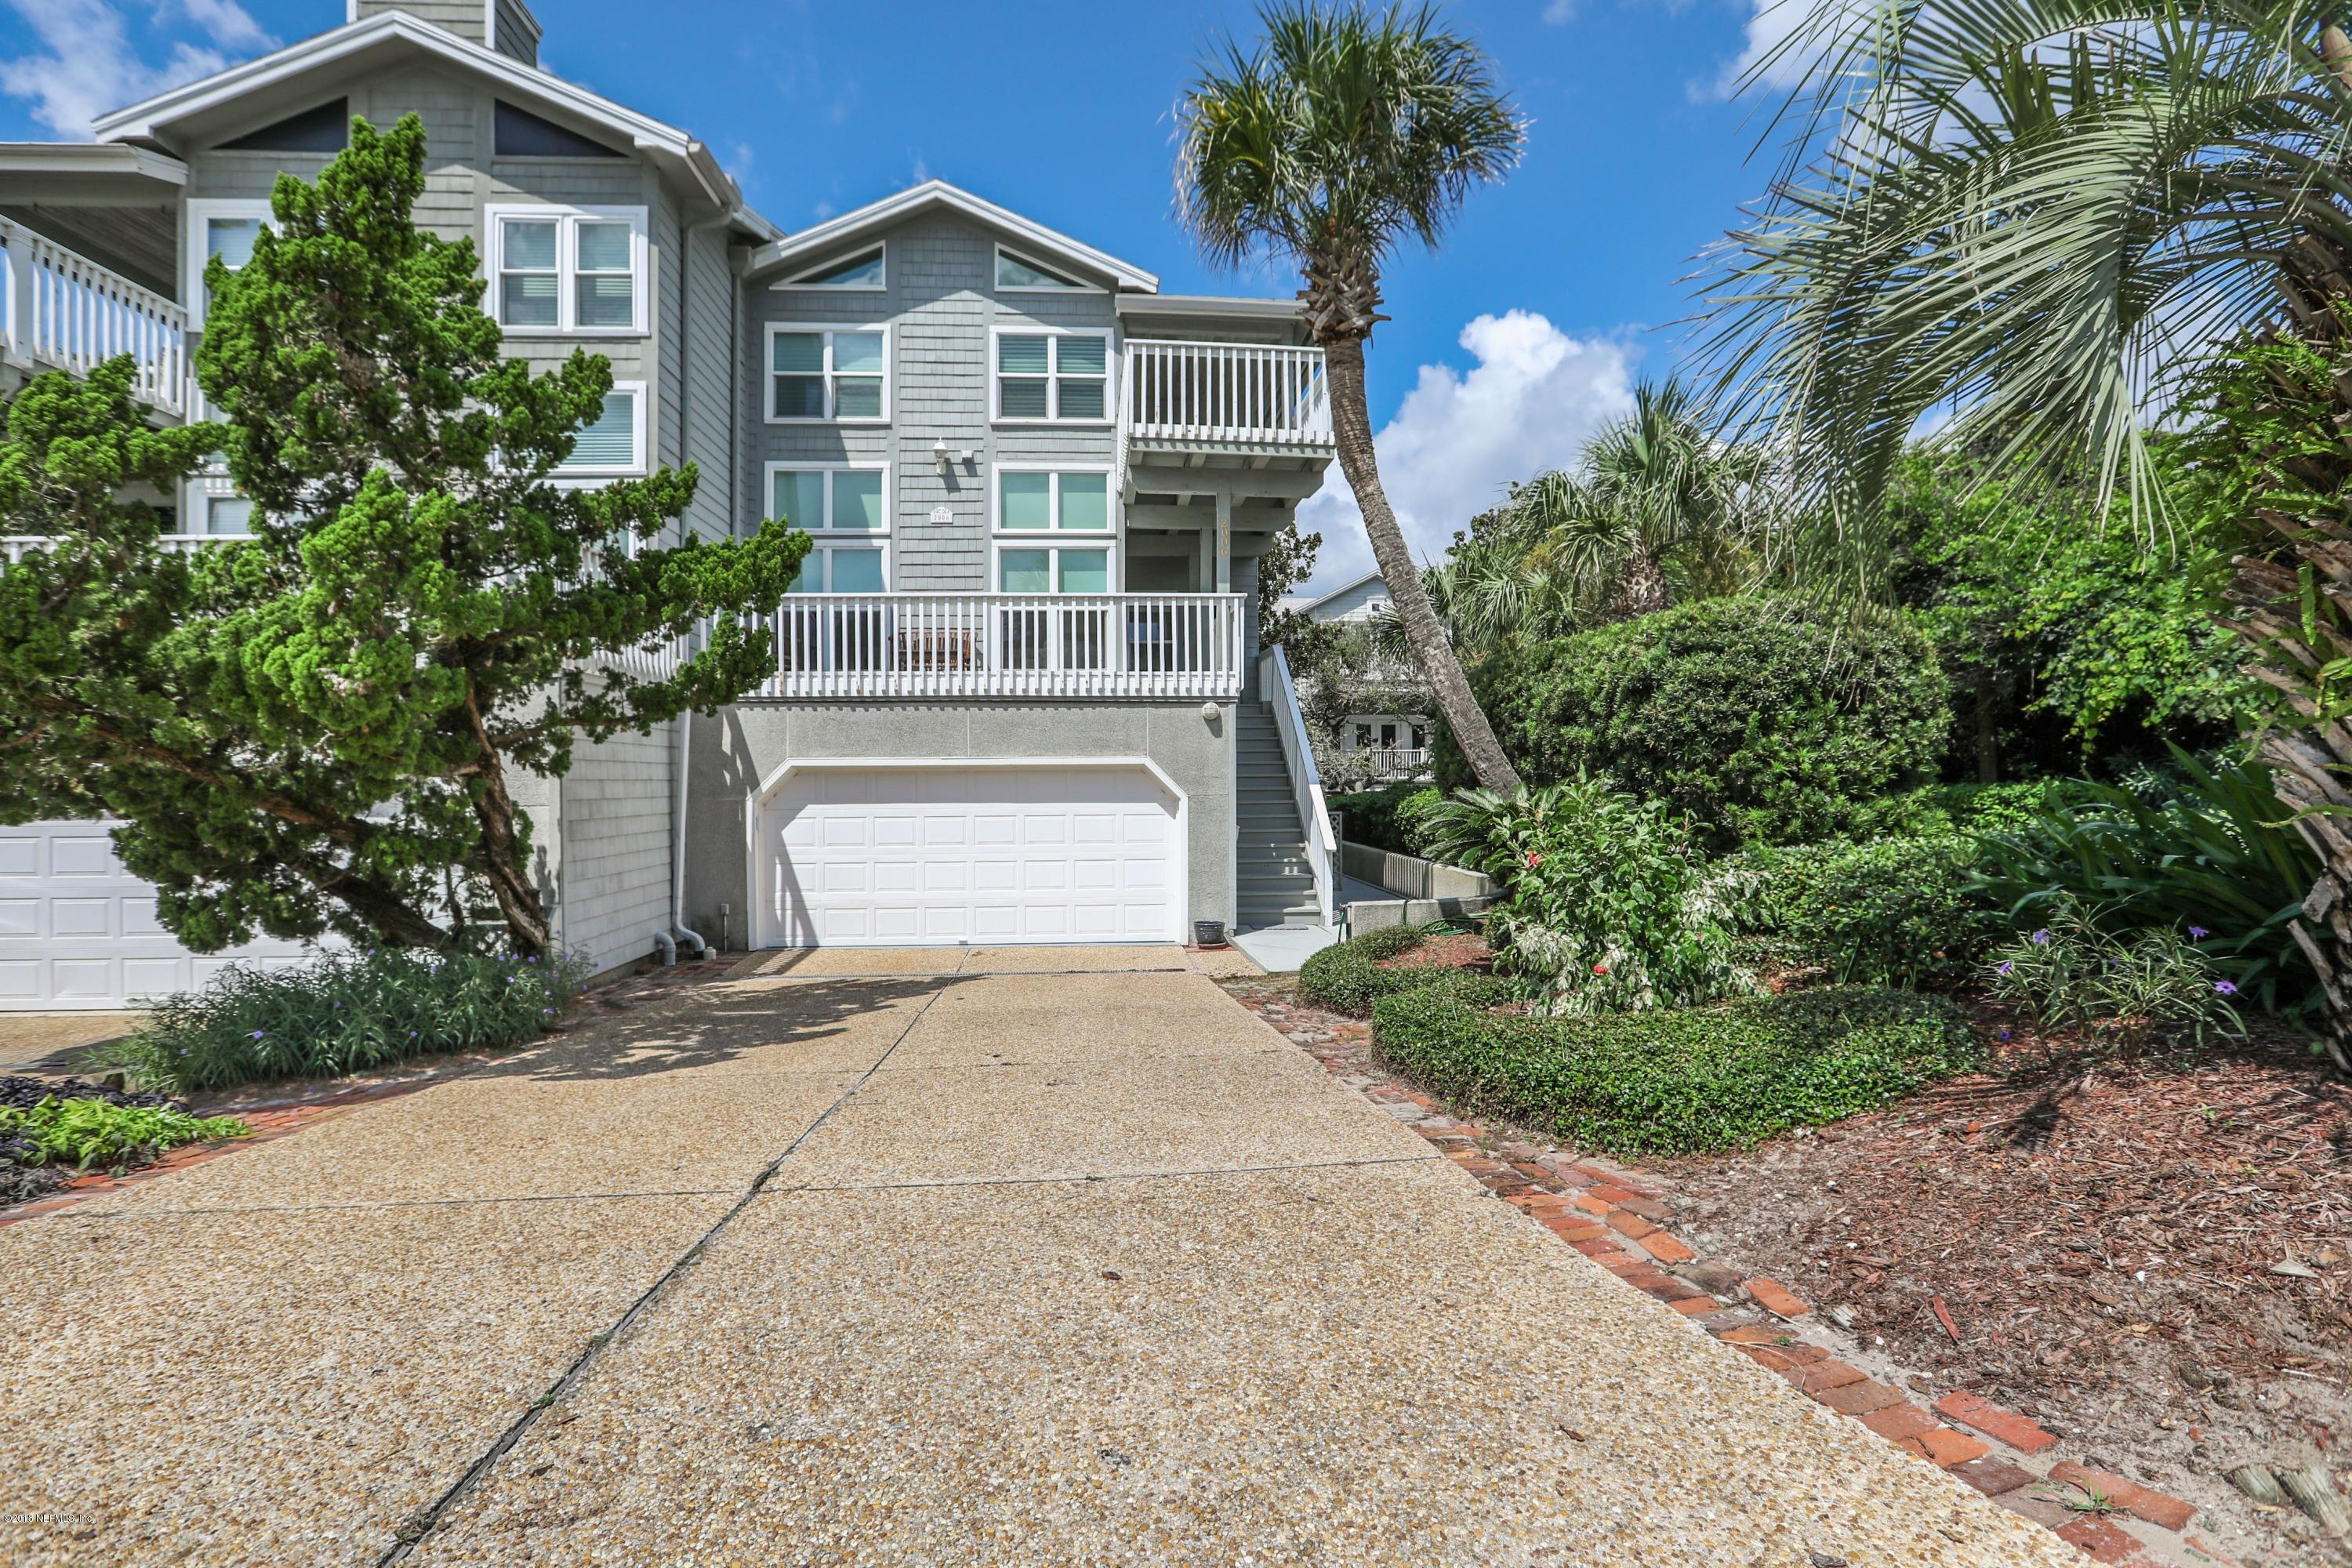 2006 BEACH, ATLANTIC BEACH, FLORIDA 32233, 3 Bedrooms Bedrooms, ,2 BathroomsBathrooms,Residential - single family,For sale,BEACH,954757